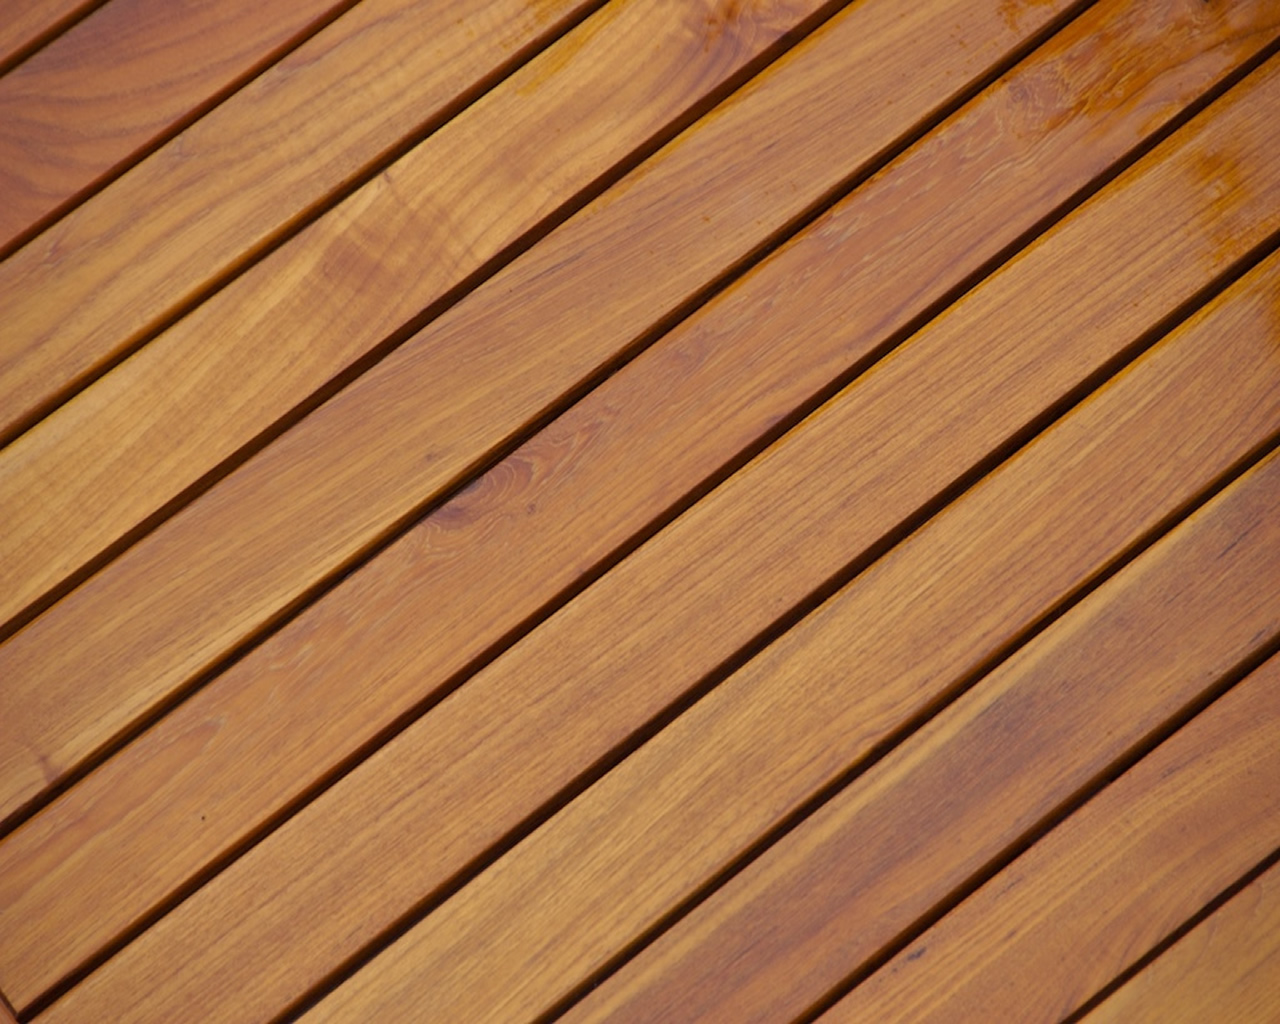 Table top texture - Wood Table Pictures Images And Stock Photos Istock